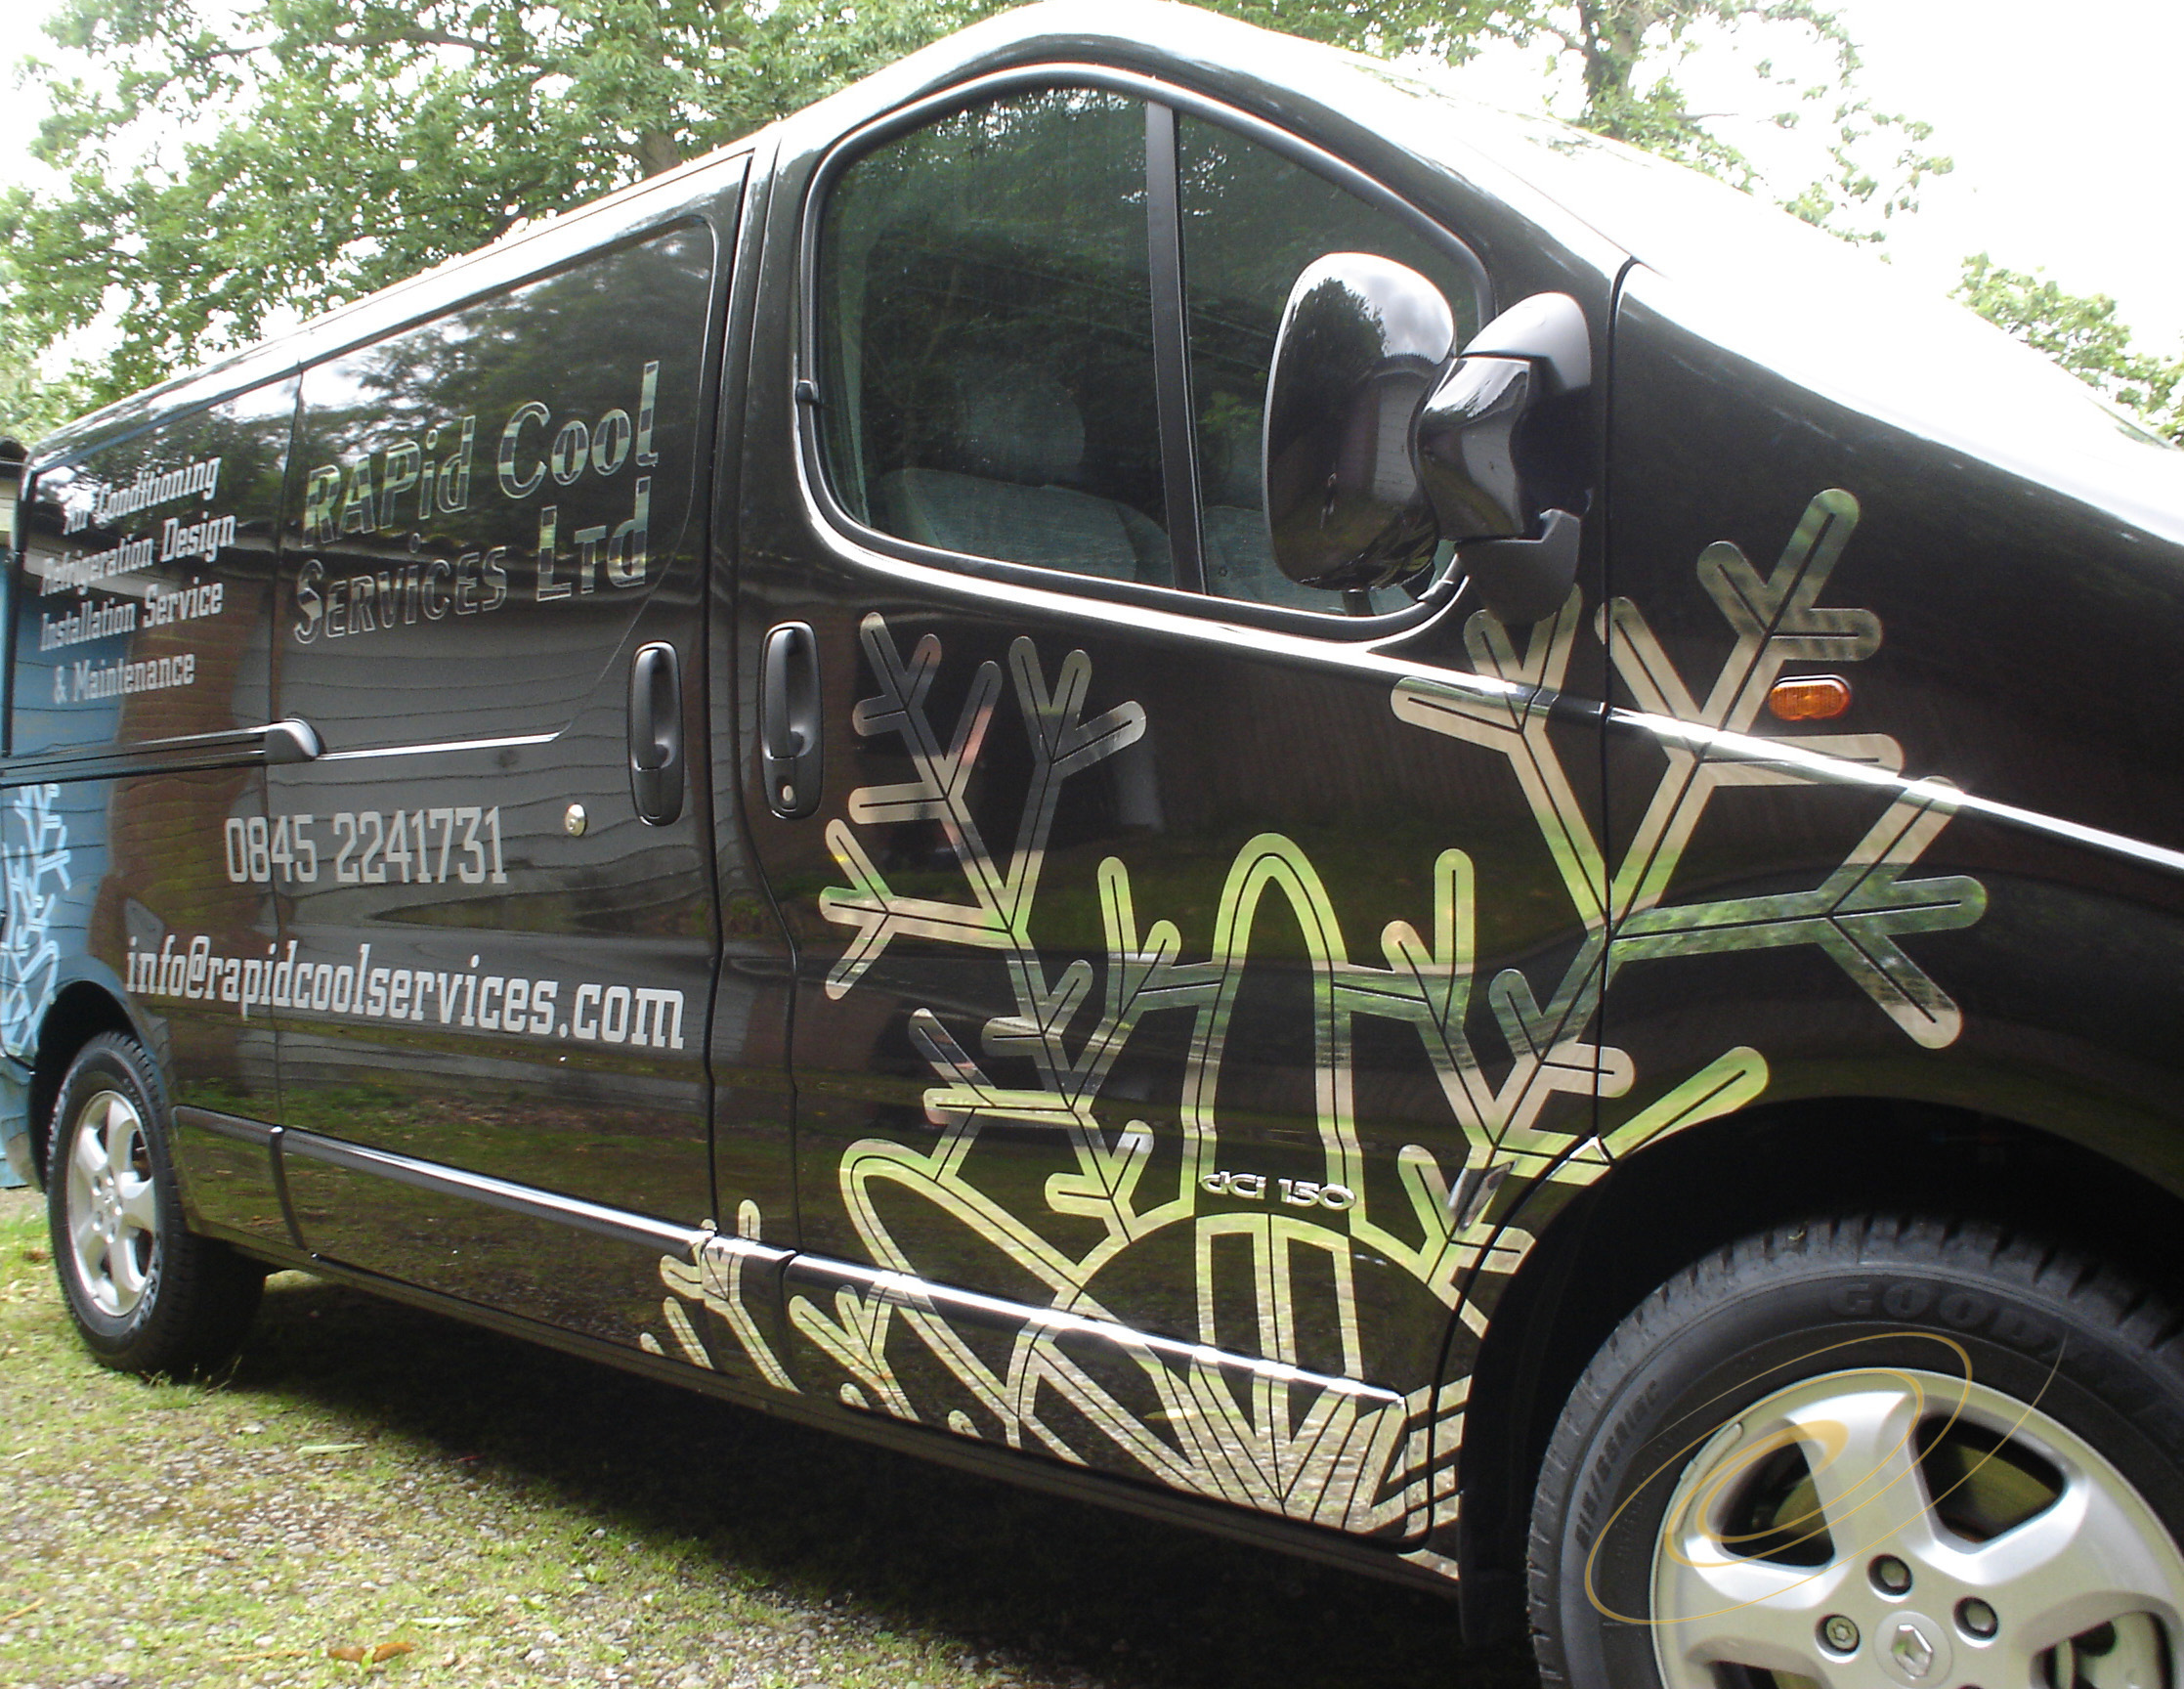 1b6b2cfcb9 transit connect van graphics · chrome van signwriter · volkswagen  transporter signwriters kent